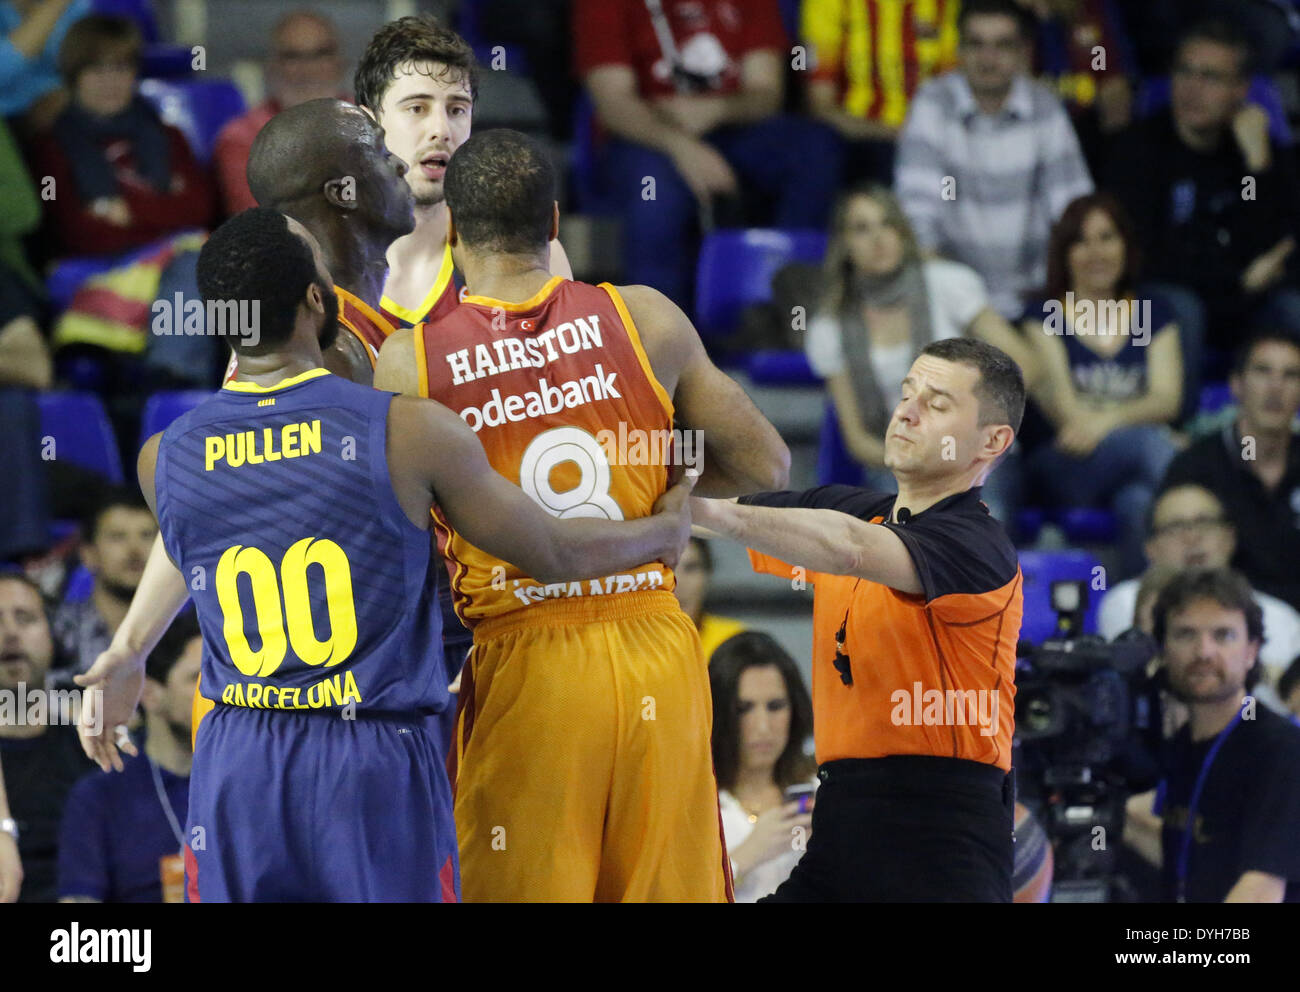 Barcelona, Spain. 17th Apr, 2014. BARCELONA SPAIN -17 Apr. Malik Hairston, Ante tomic and Jakob Pullen in the second match of the quarterfinals of the Euroleague basketball match between FC Barcelona and Galatasaray, played at the Palau Blaugrana, the April 17, 2014 Photo: Joan Valls/Urbanandsport/Nurphoto Credit:  Joan Valls/NurPhoto/ZUMAPRESS.com/Alamy Live News - Stock Image